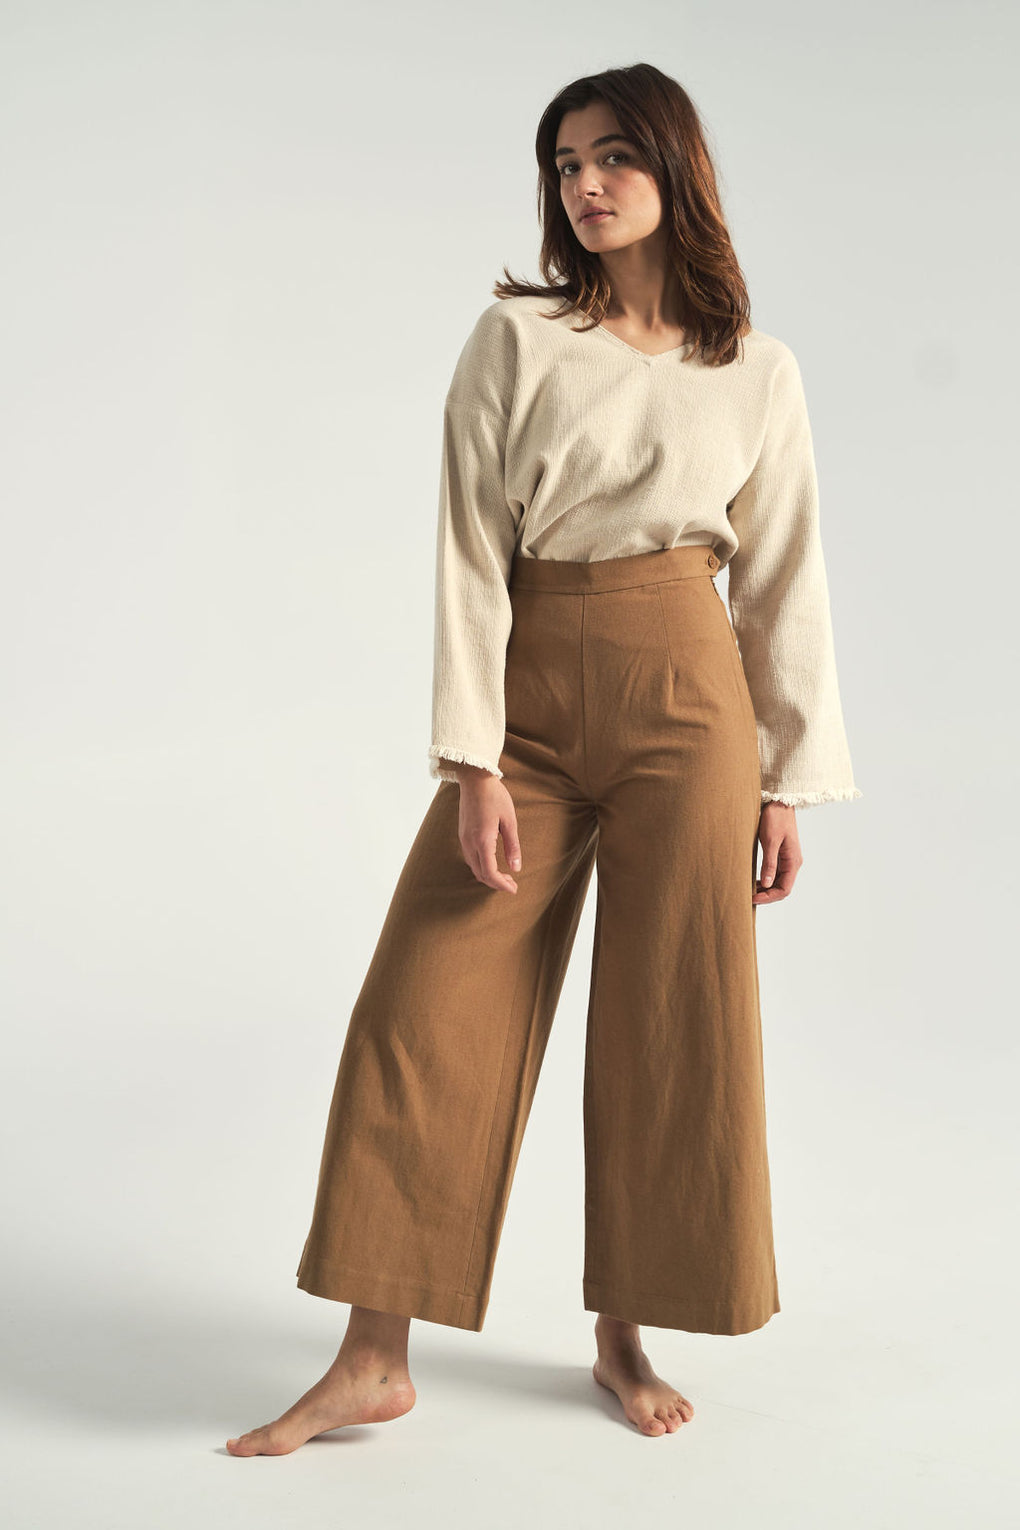 Wide-leg pants-7115 by Szeki-wide-legged pants-sailor pants-Idun-St.Paul